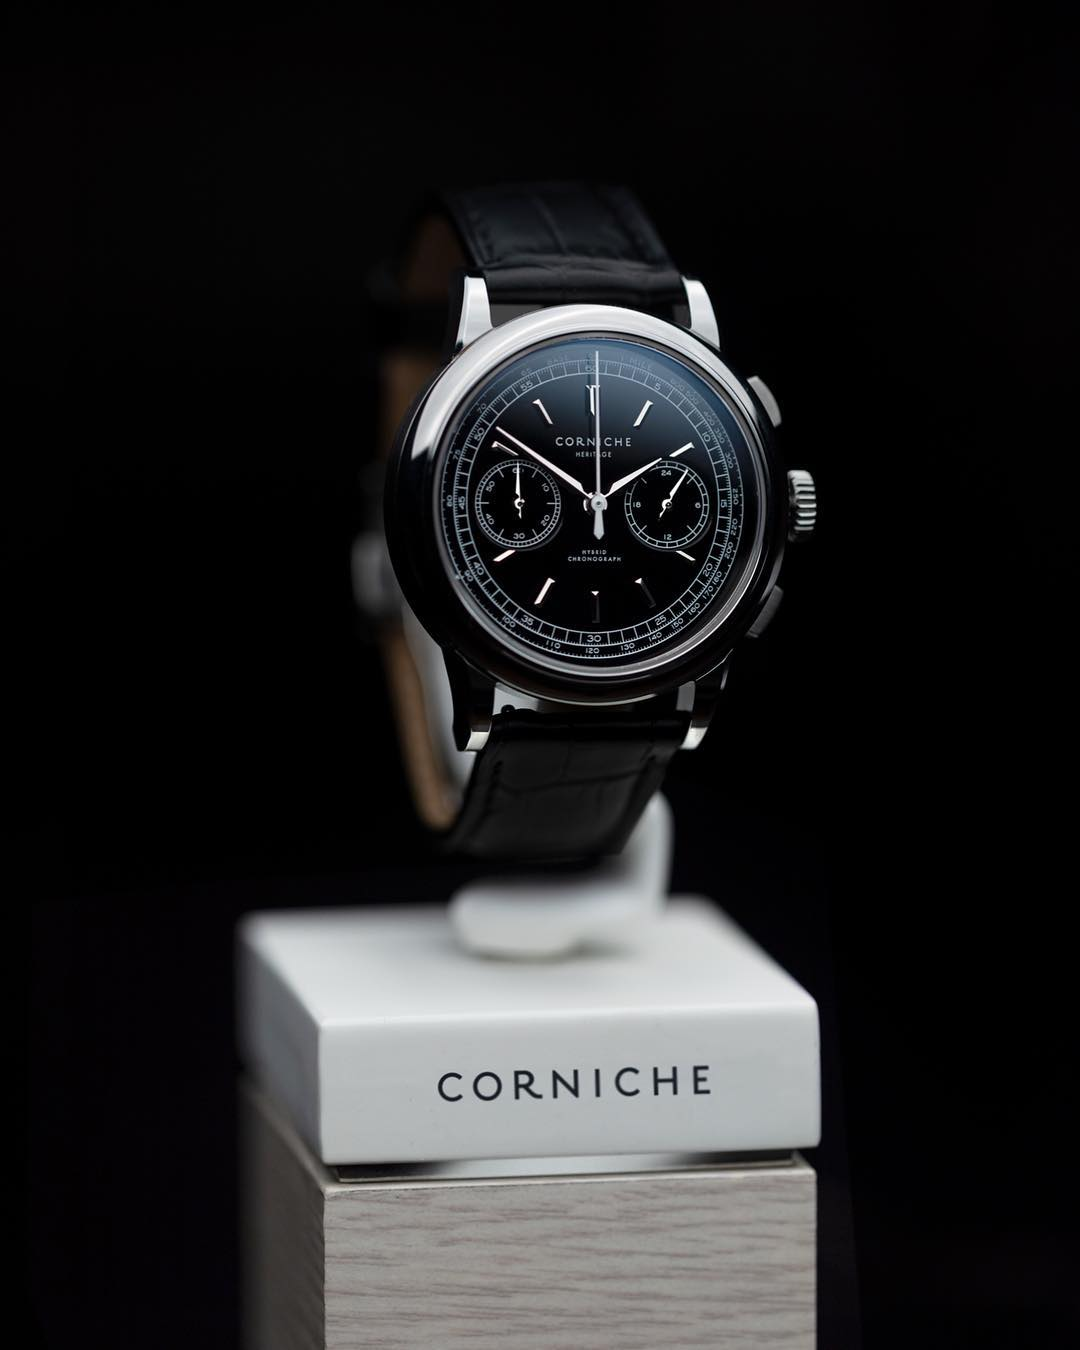 Great watches and style go perfectly together